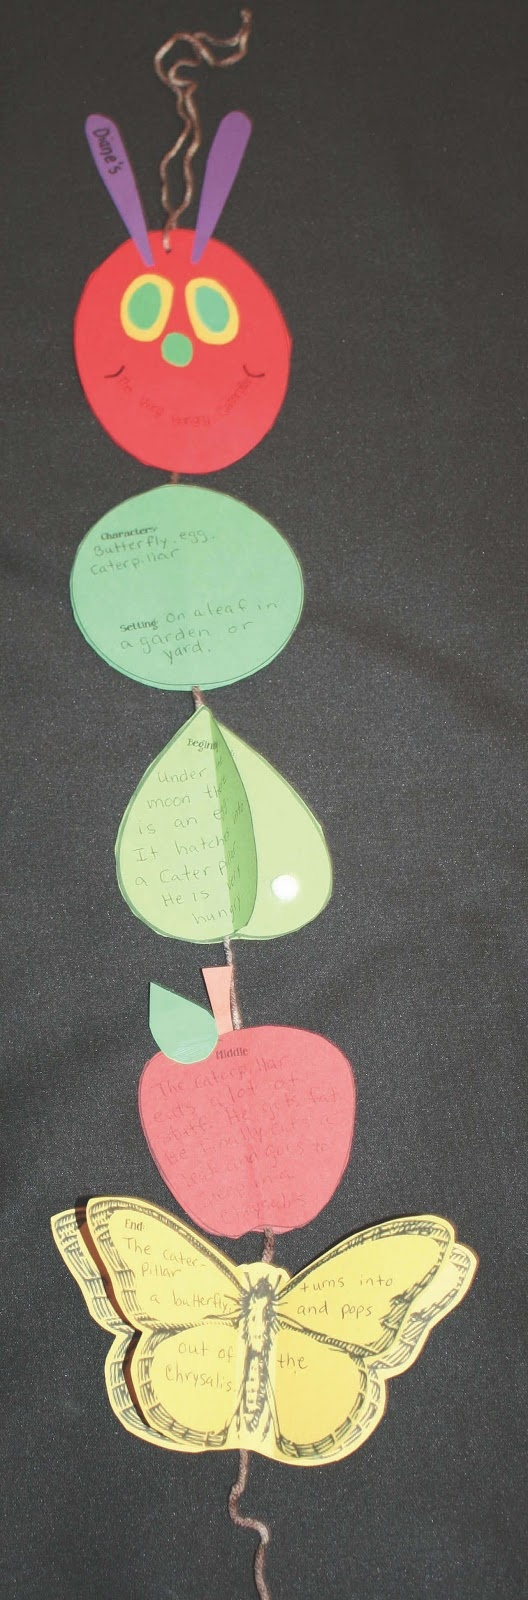 174 best very hungry caterpillar images on pinterest very hungry